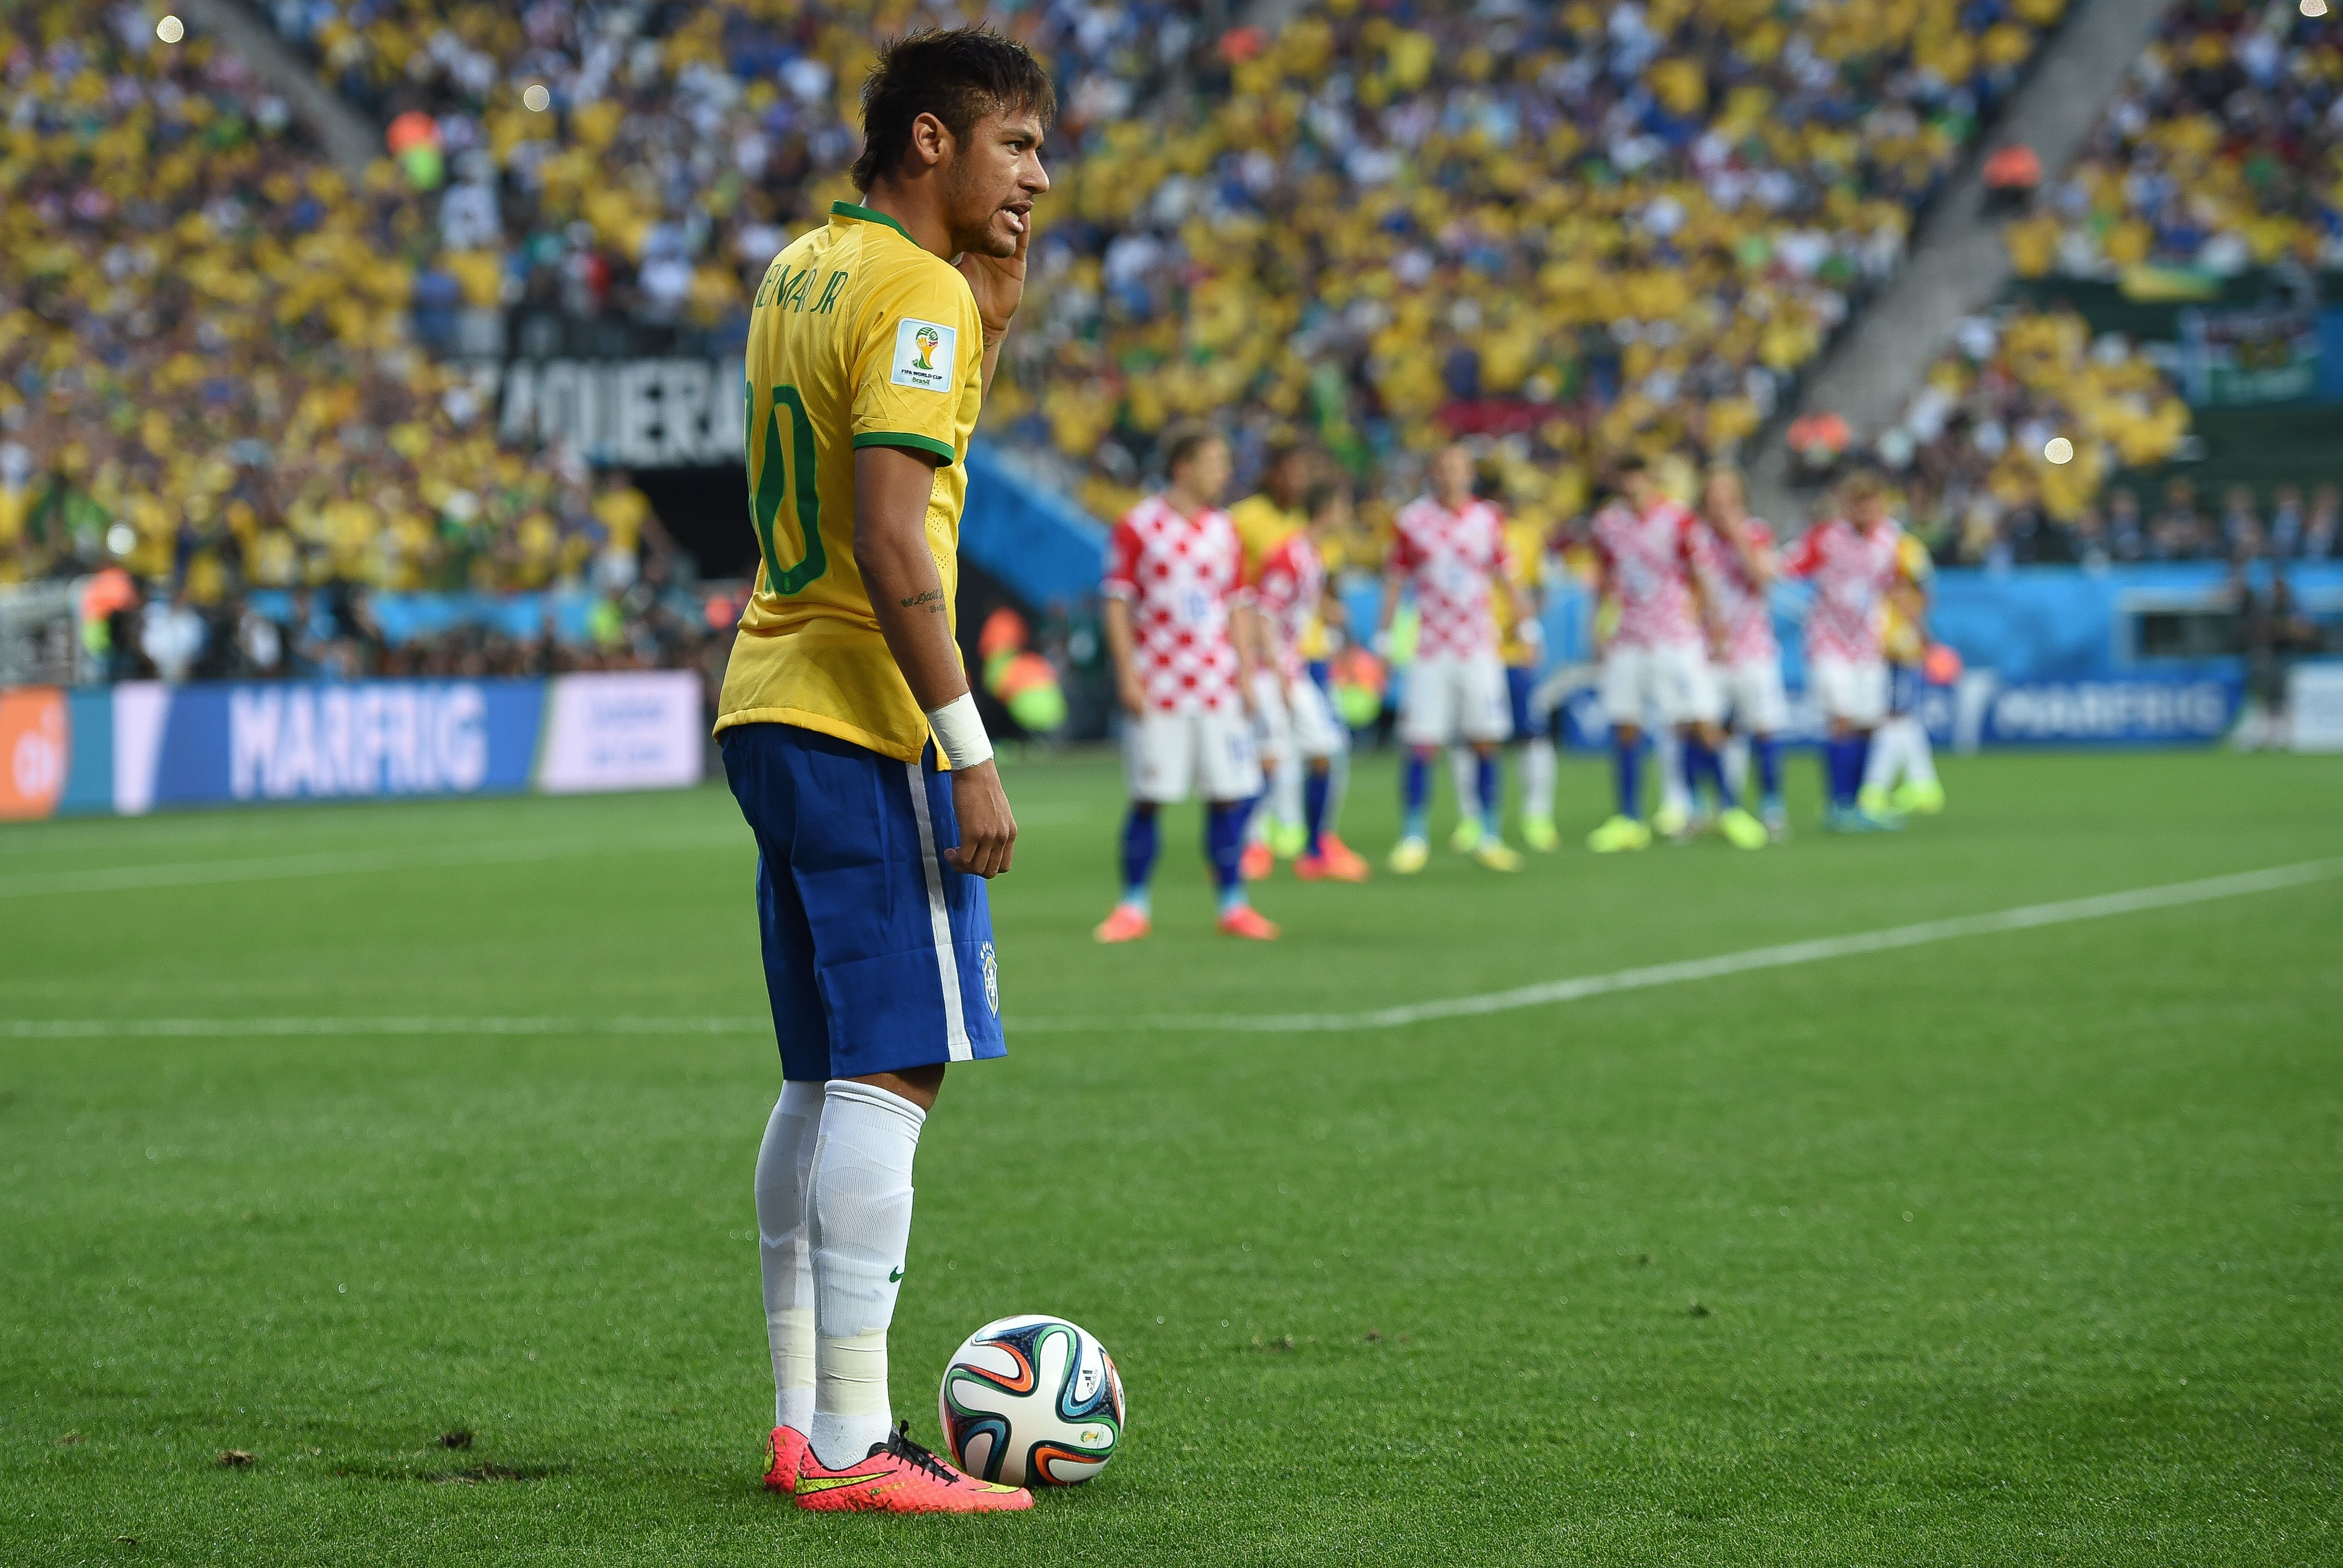 10 of the Best Active Free Kick Takers in Football - TheRichest